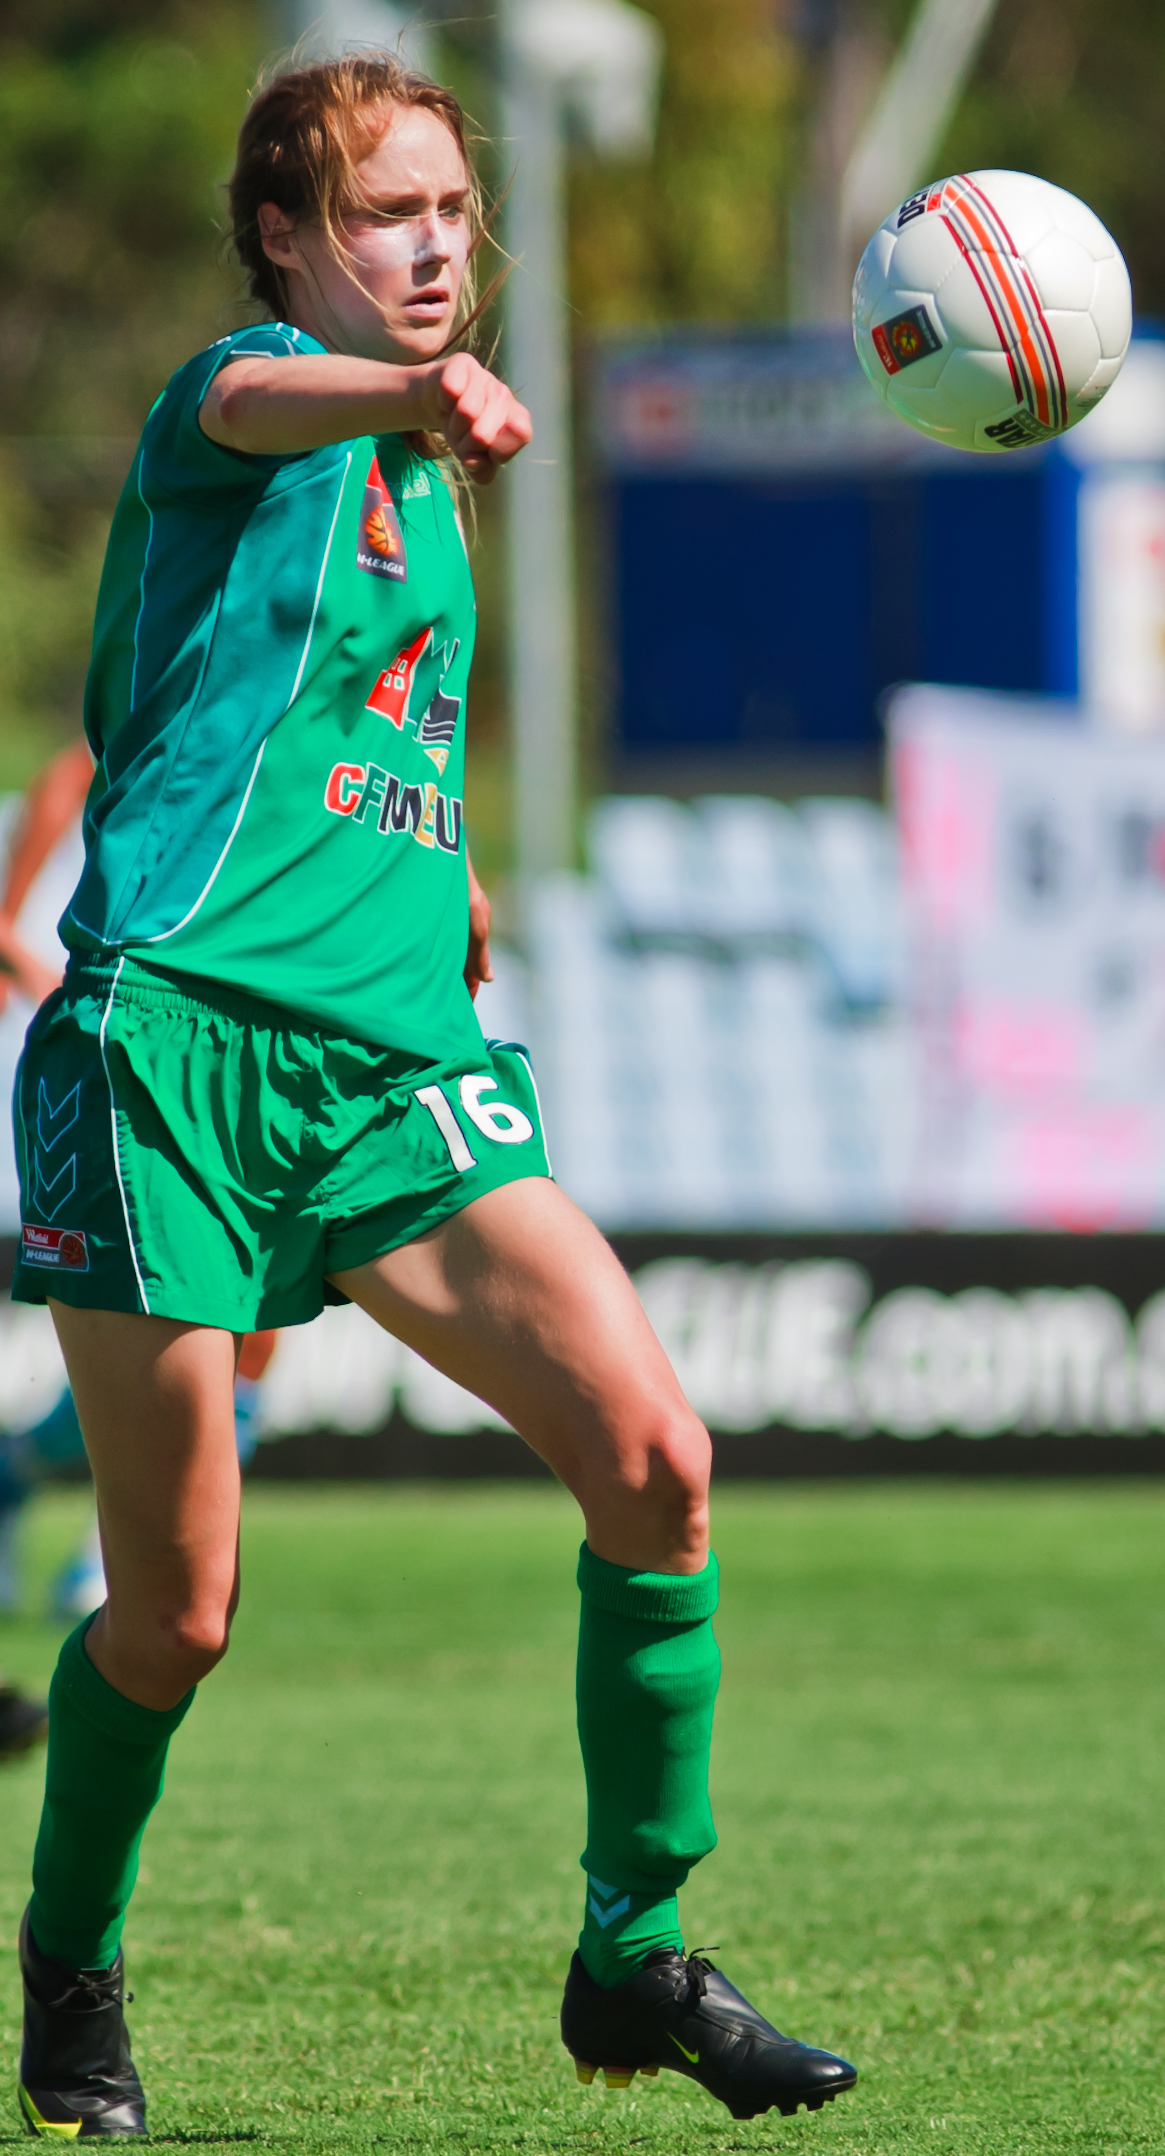 Photo of Ellyse Perry playing soccer